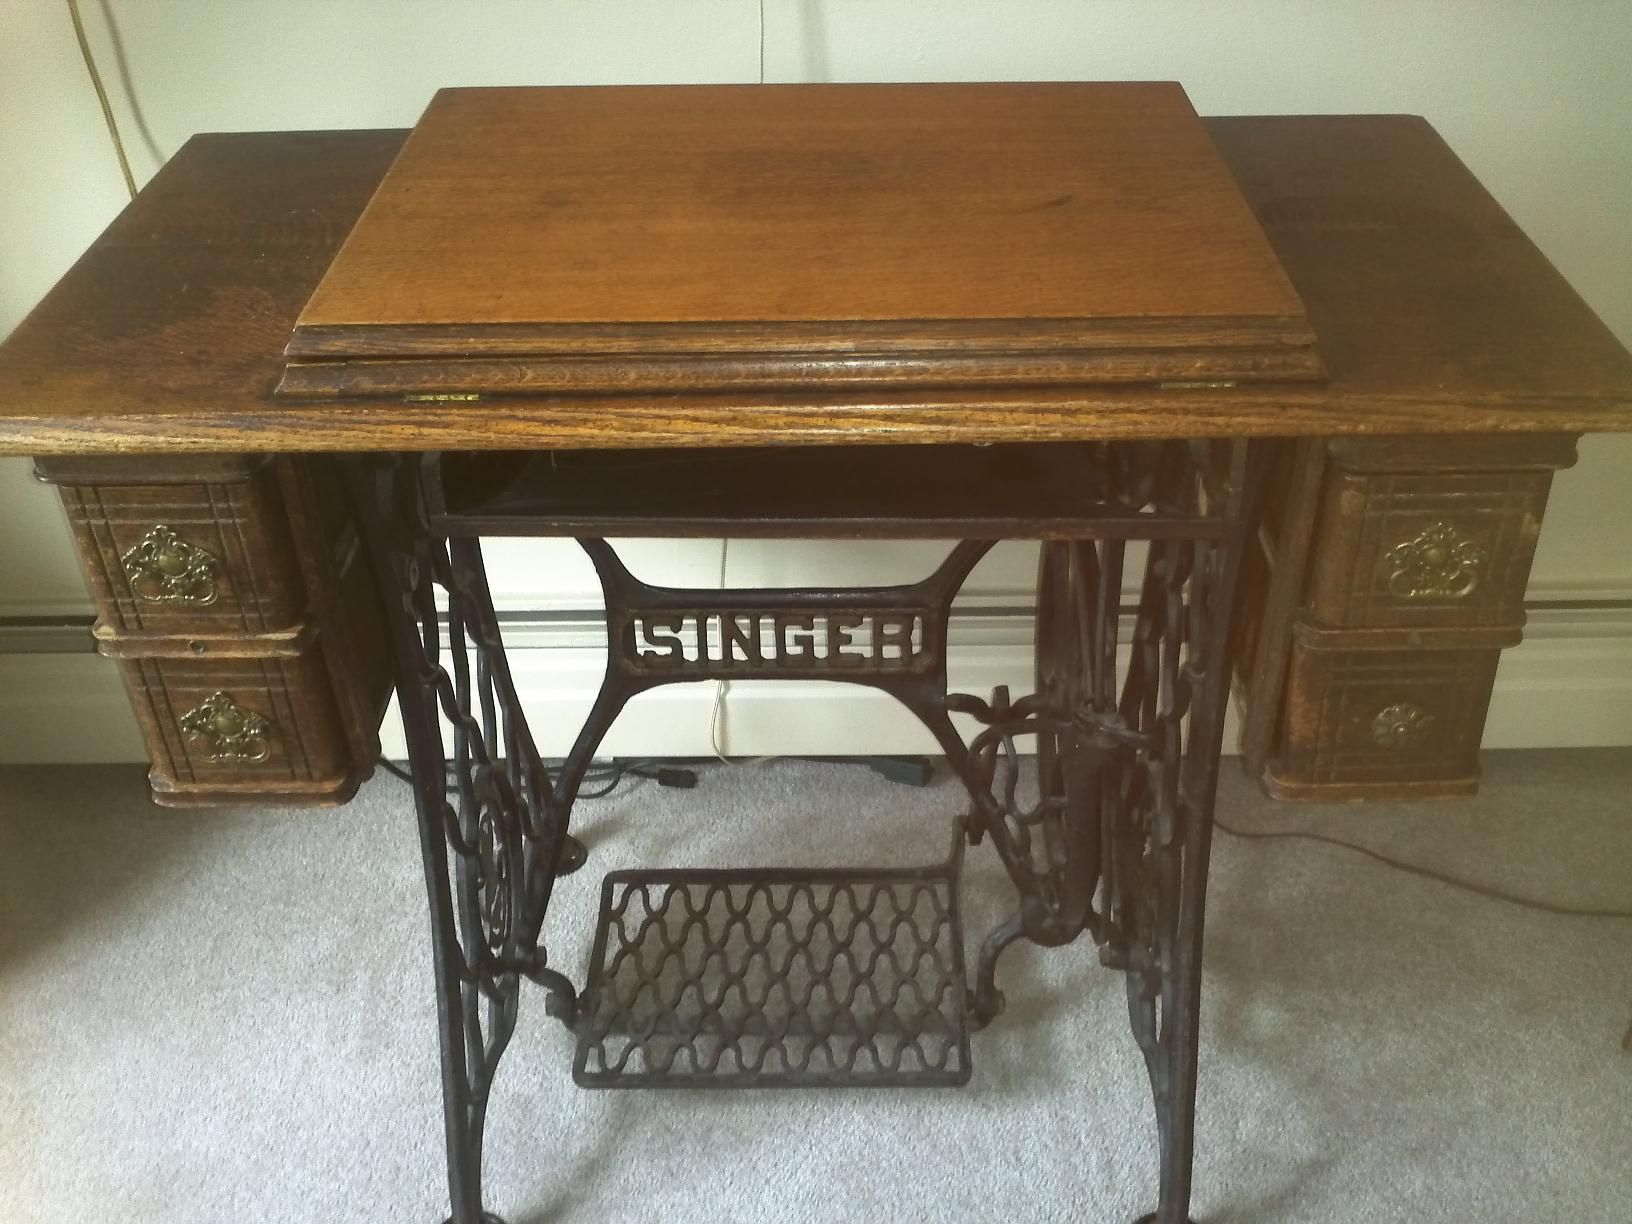 1904 Singer Model 27 4 Treadle Sewing Machine Cabinet Shown In